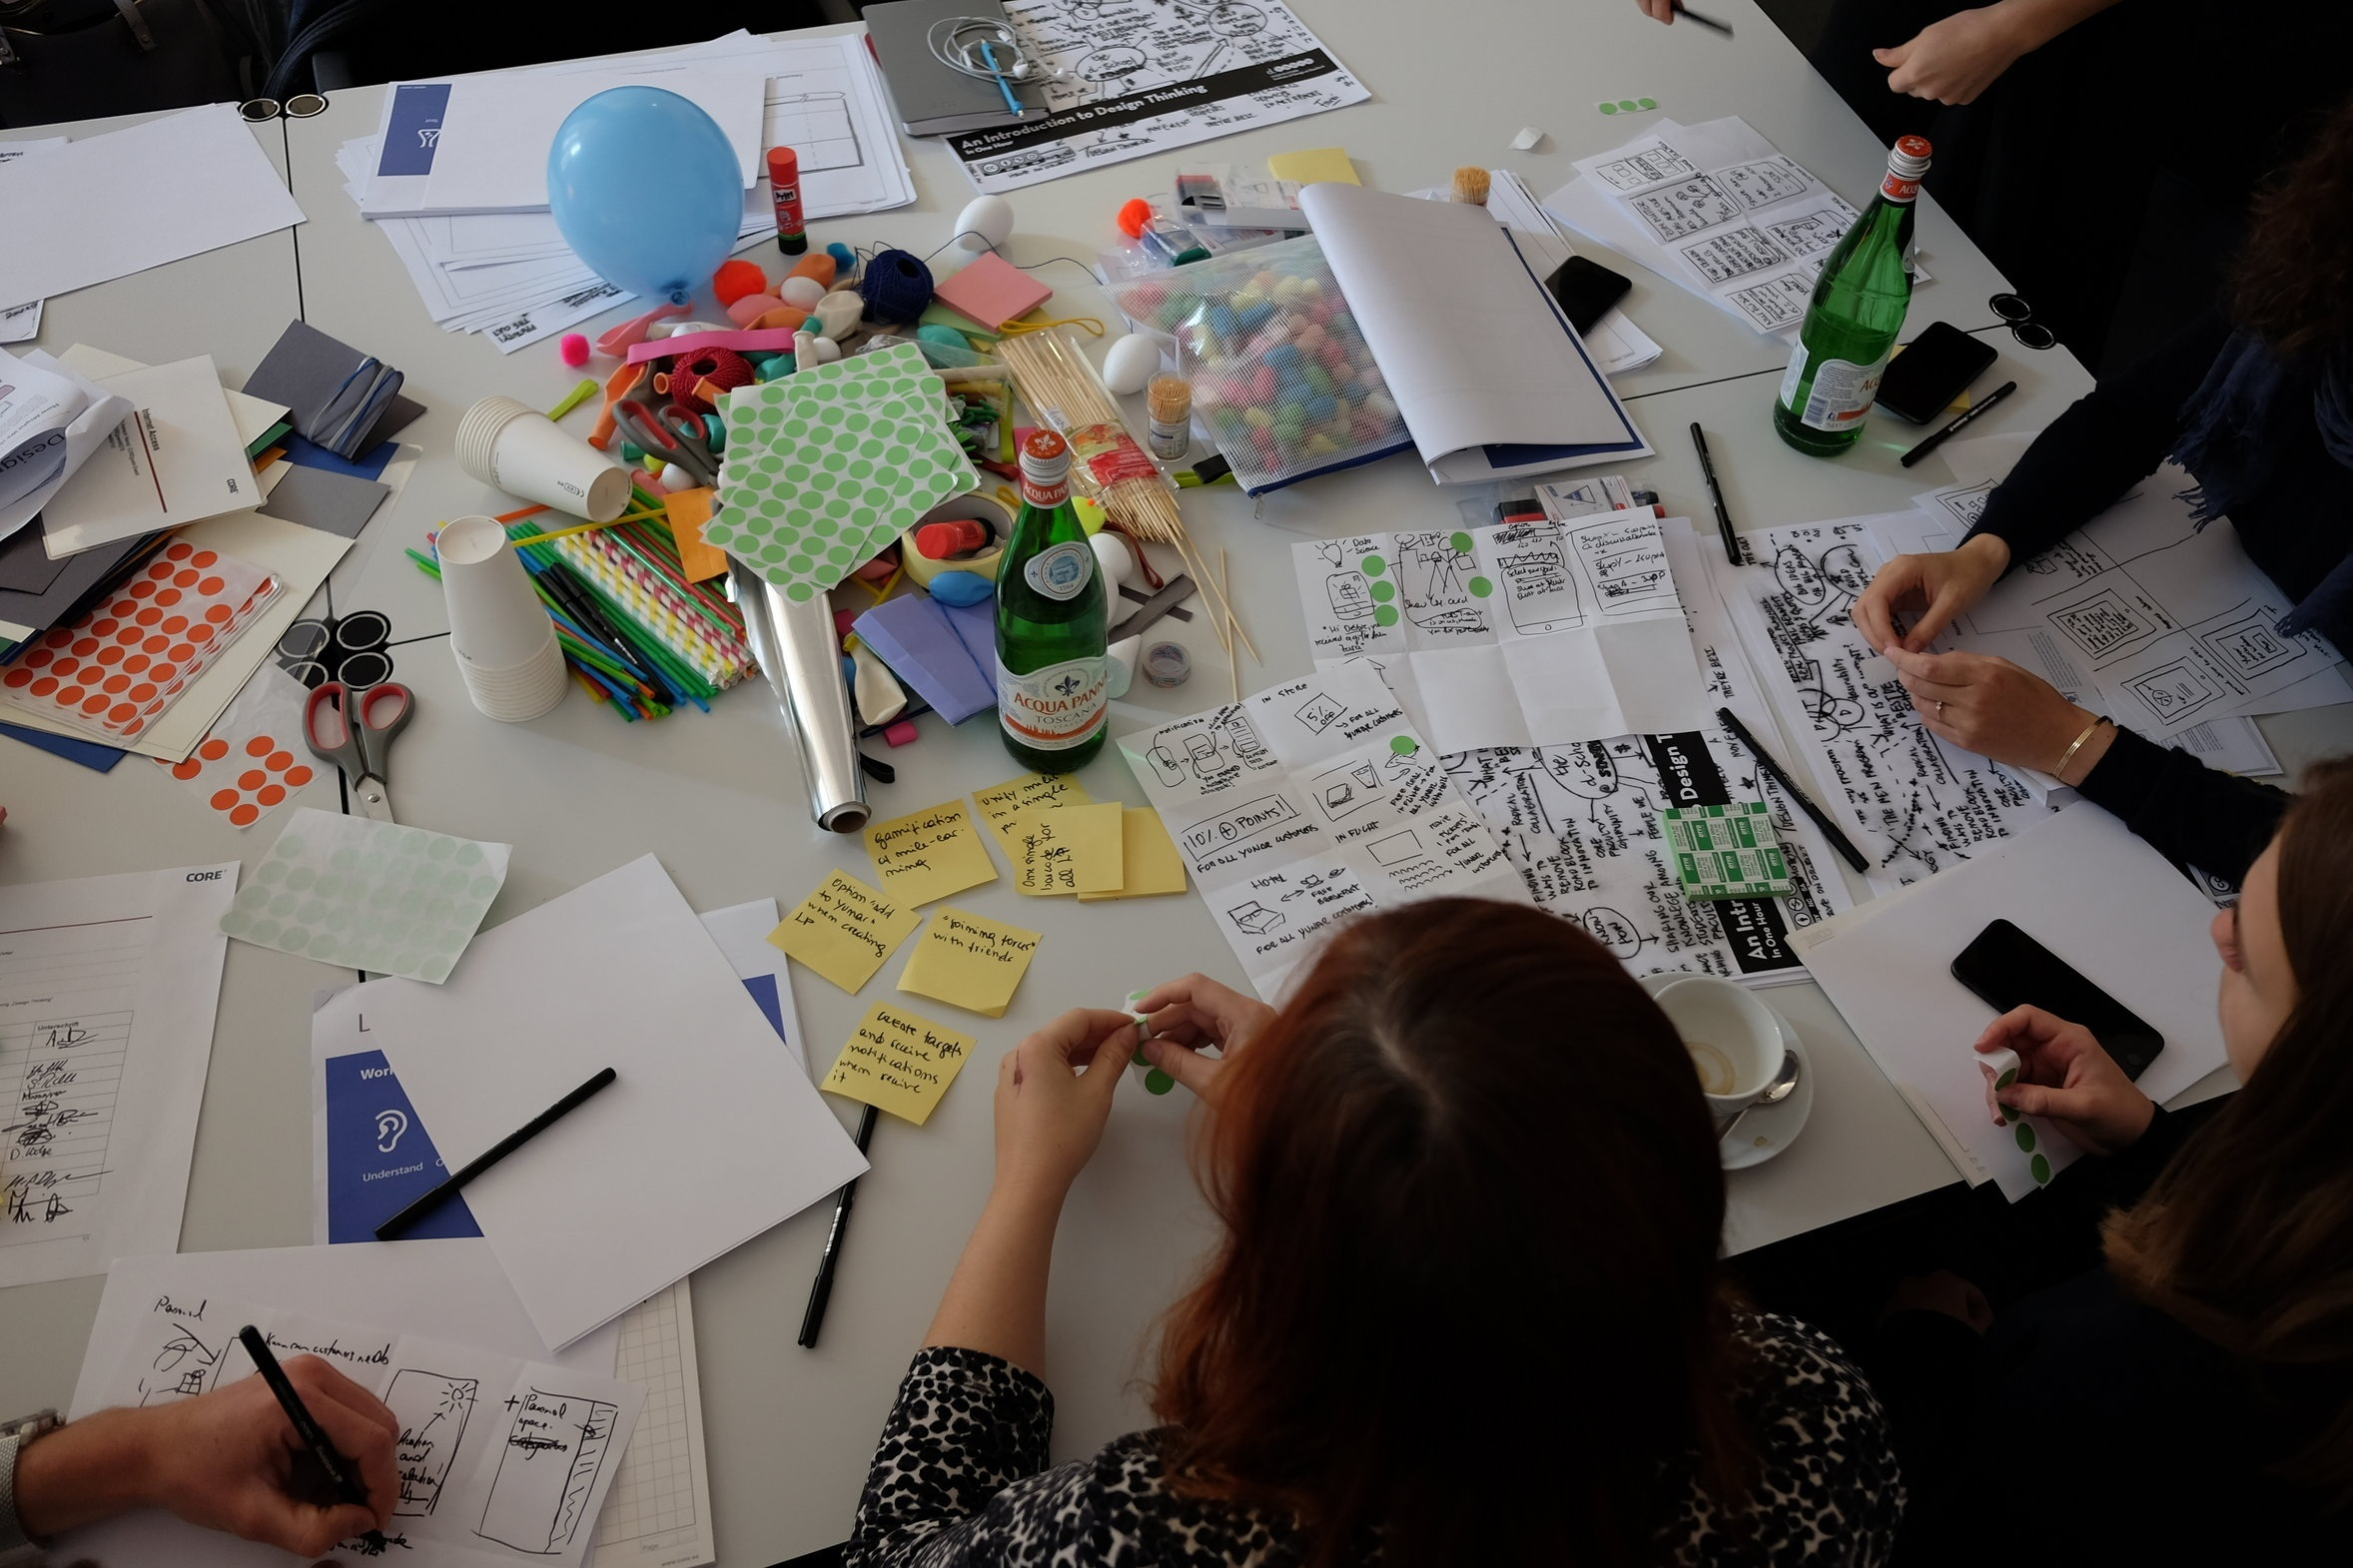 Design Thinking Workshop - Learn the Design Thinking process in a 2-day workshop.